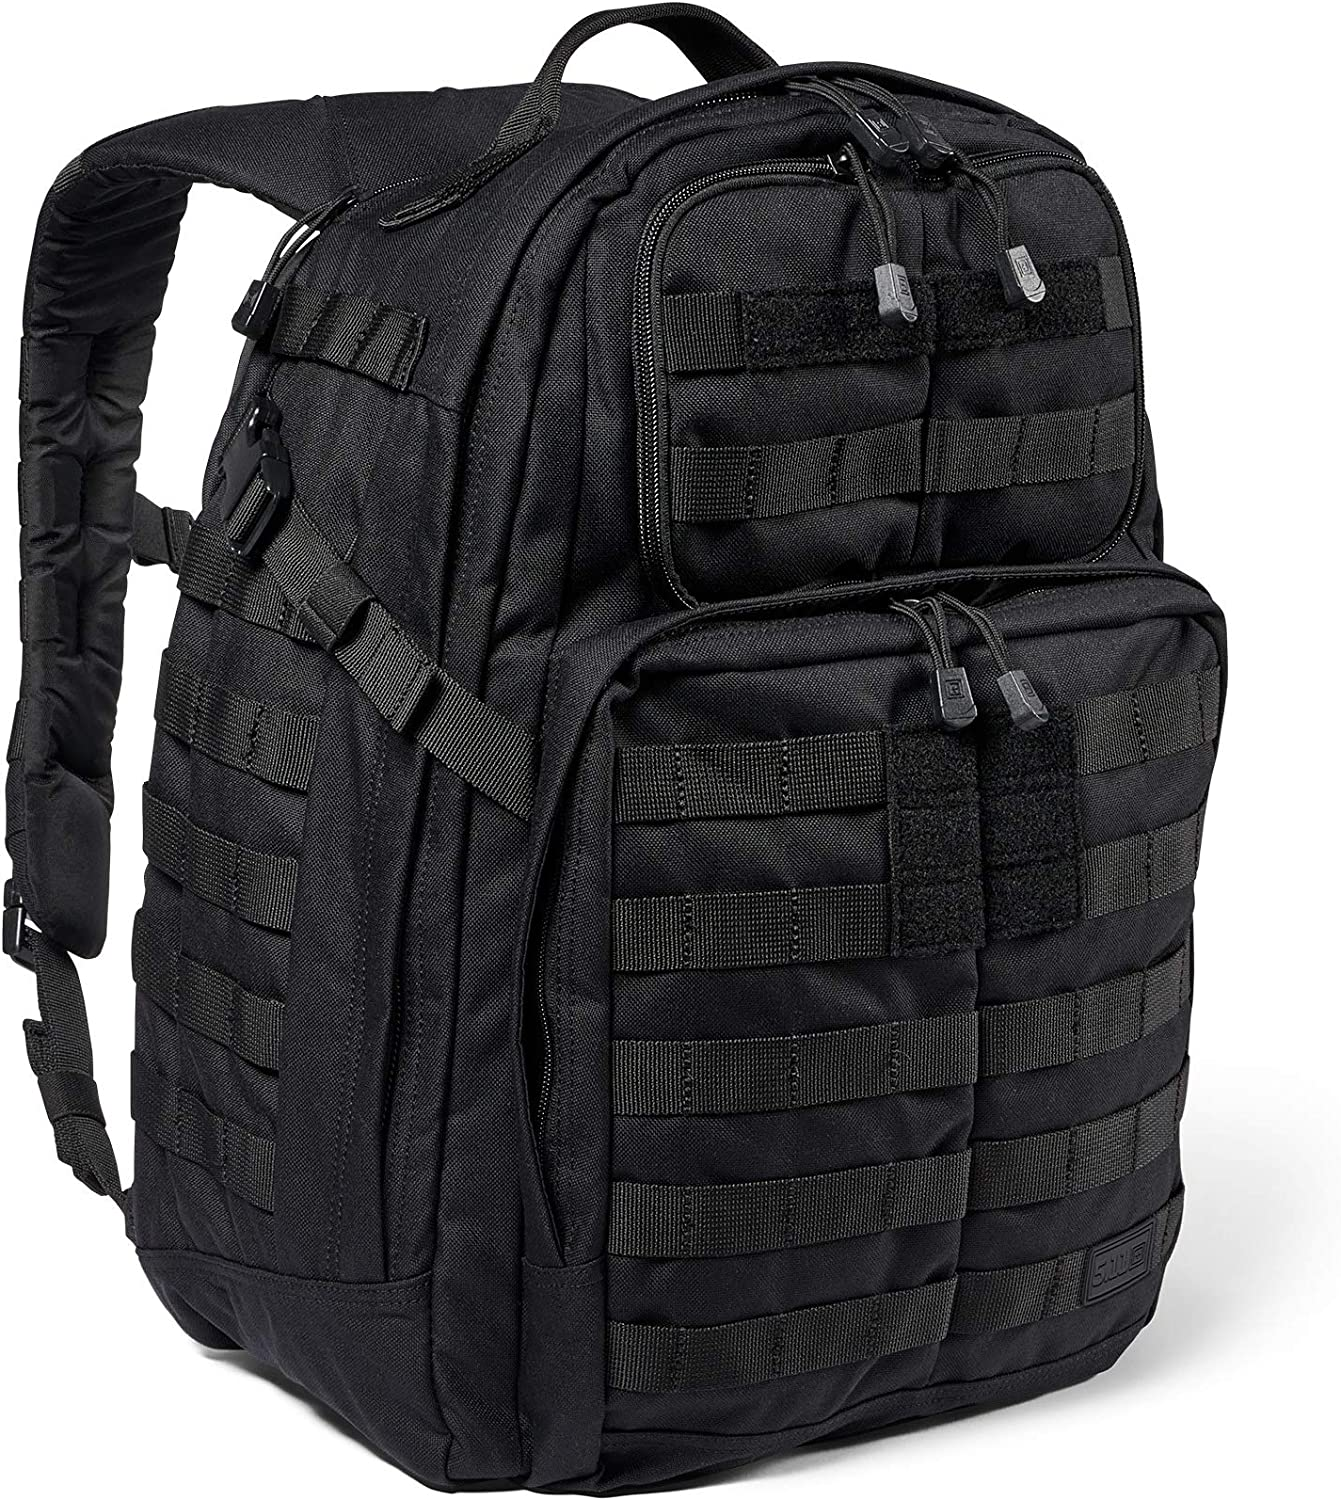 5.11 Tactical Backpack 'Rush 24 2.0 'Military Molle Pack, CCW and Laptop Compartment, 37 Liter, Medium, Style 56563 'Black